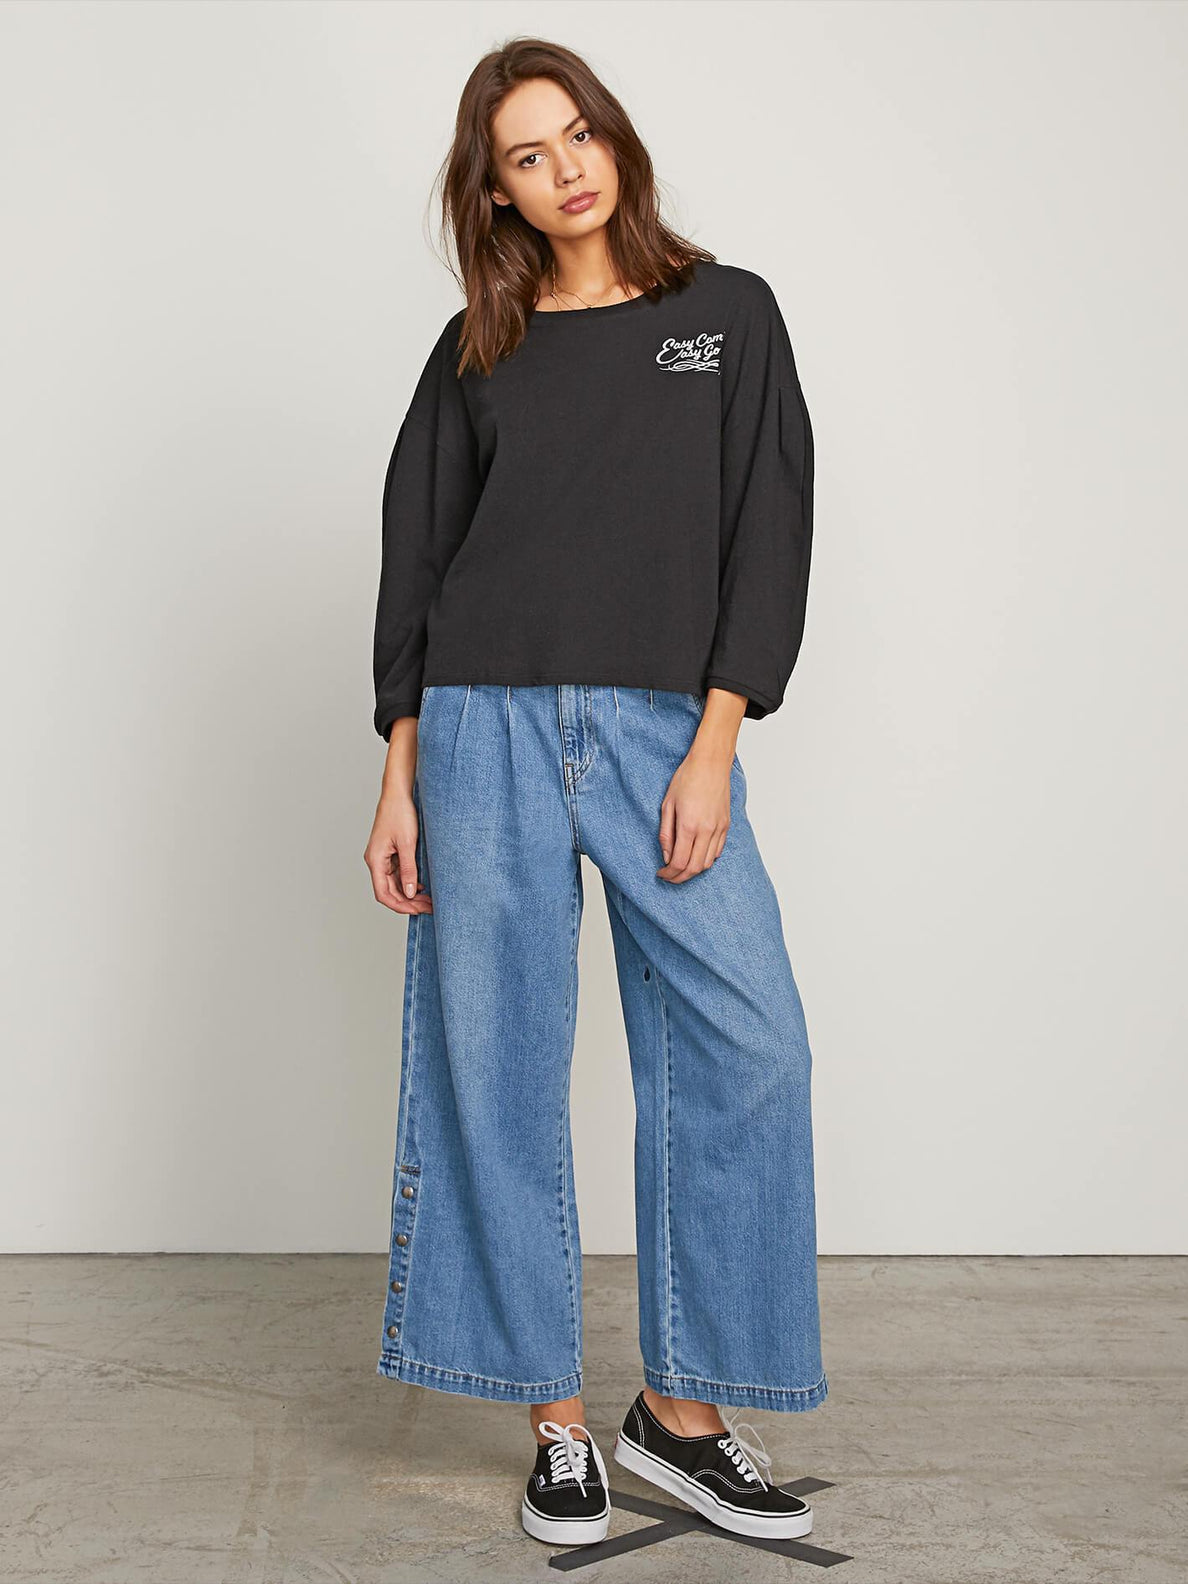 Come Pleated Long Sleeve Tee - Black